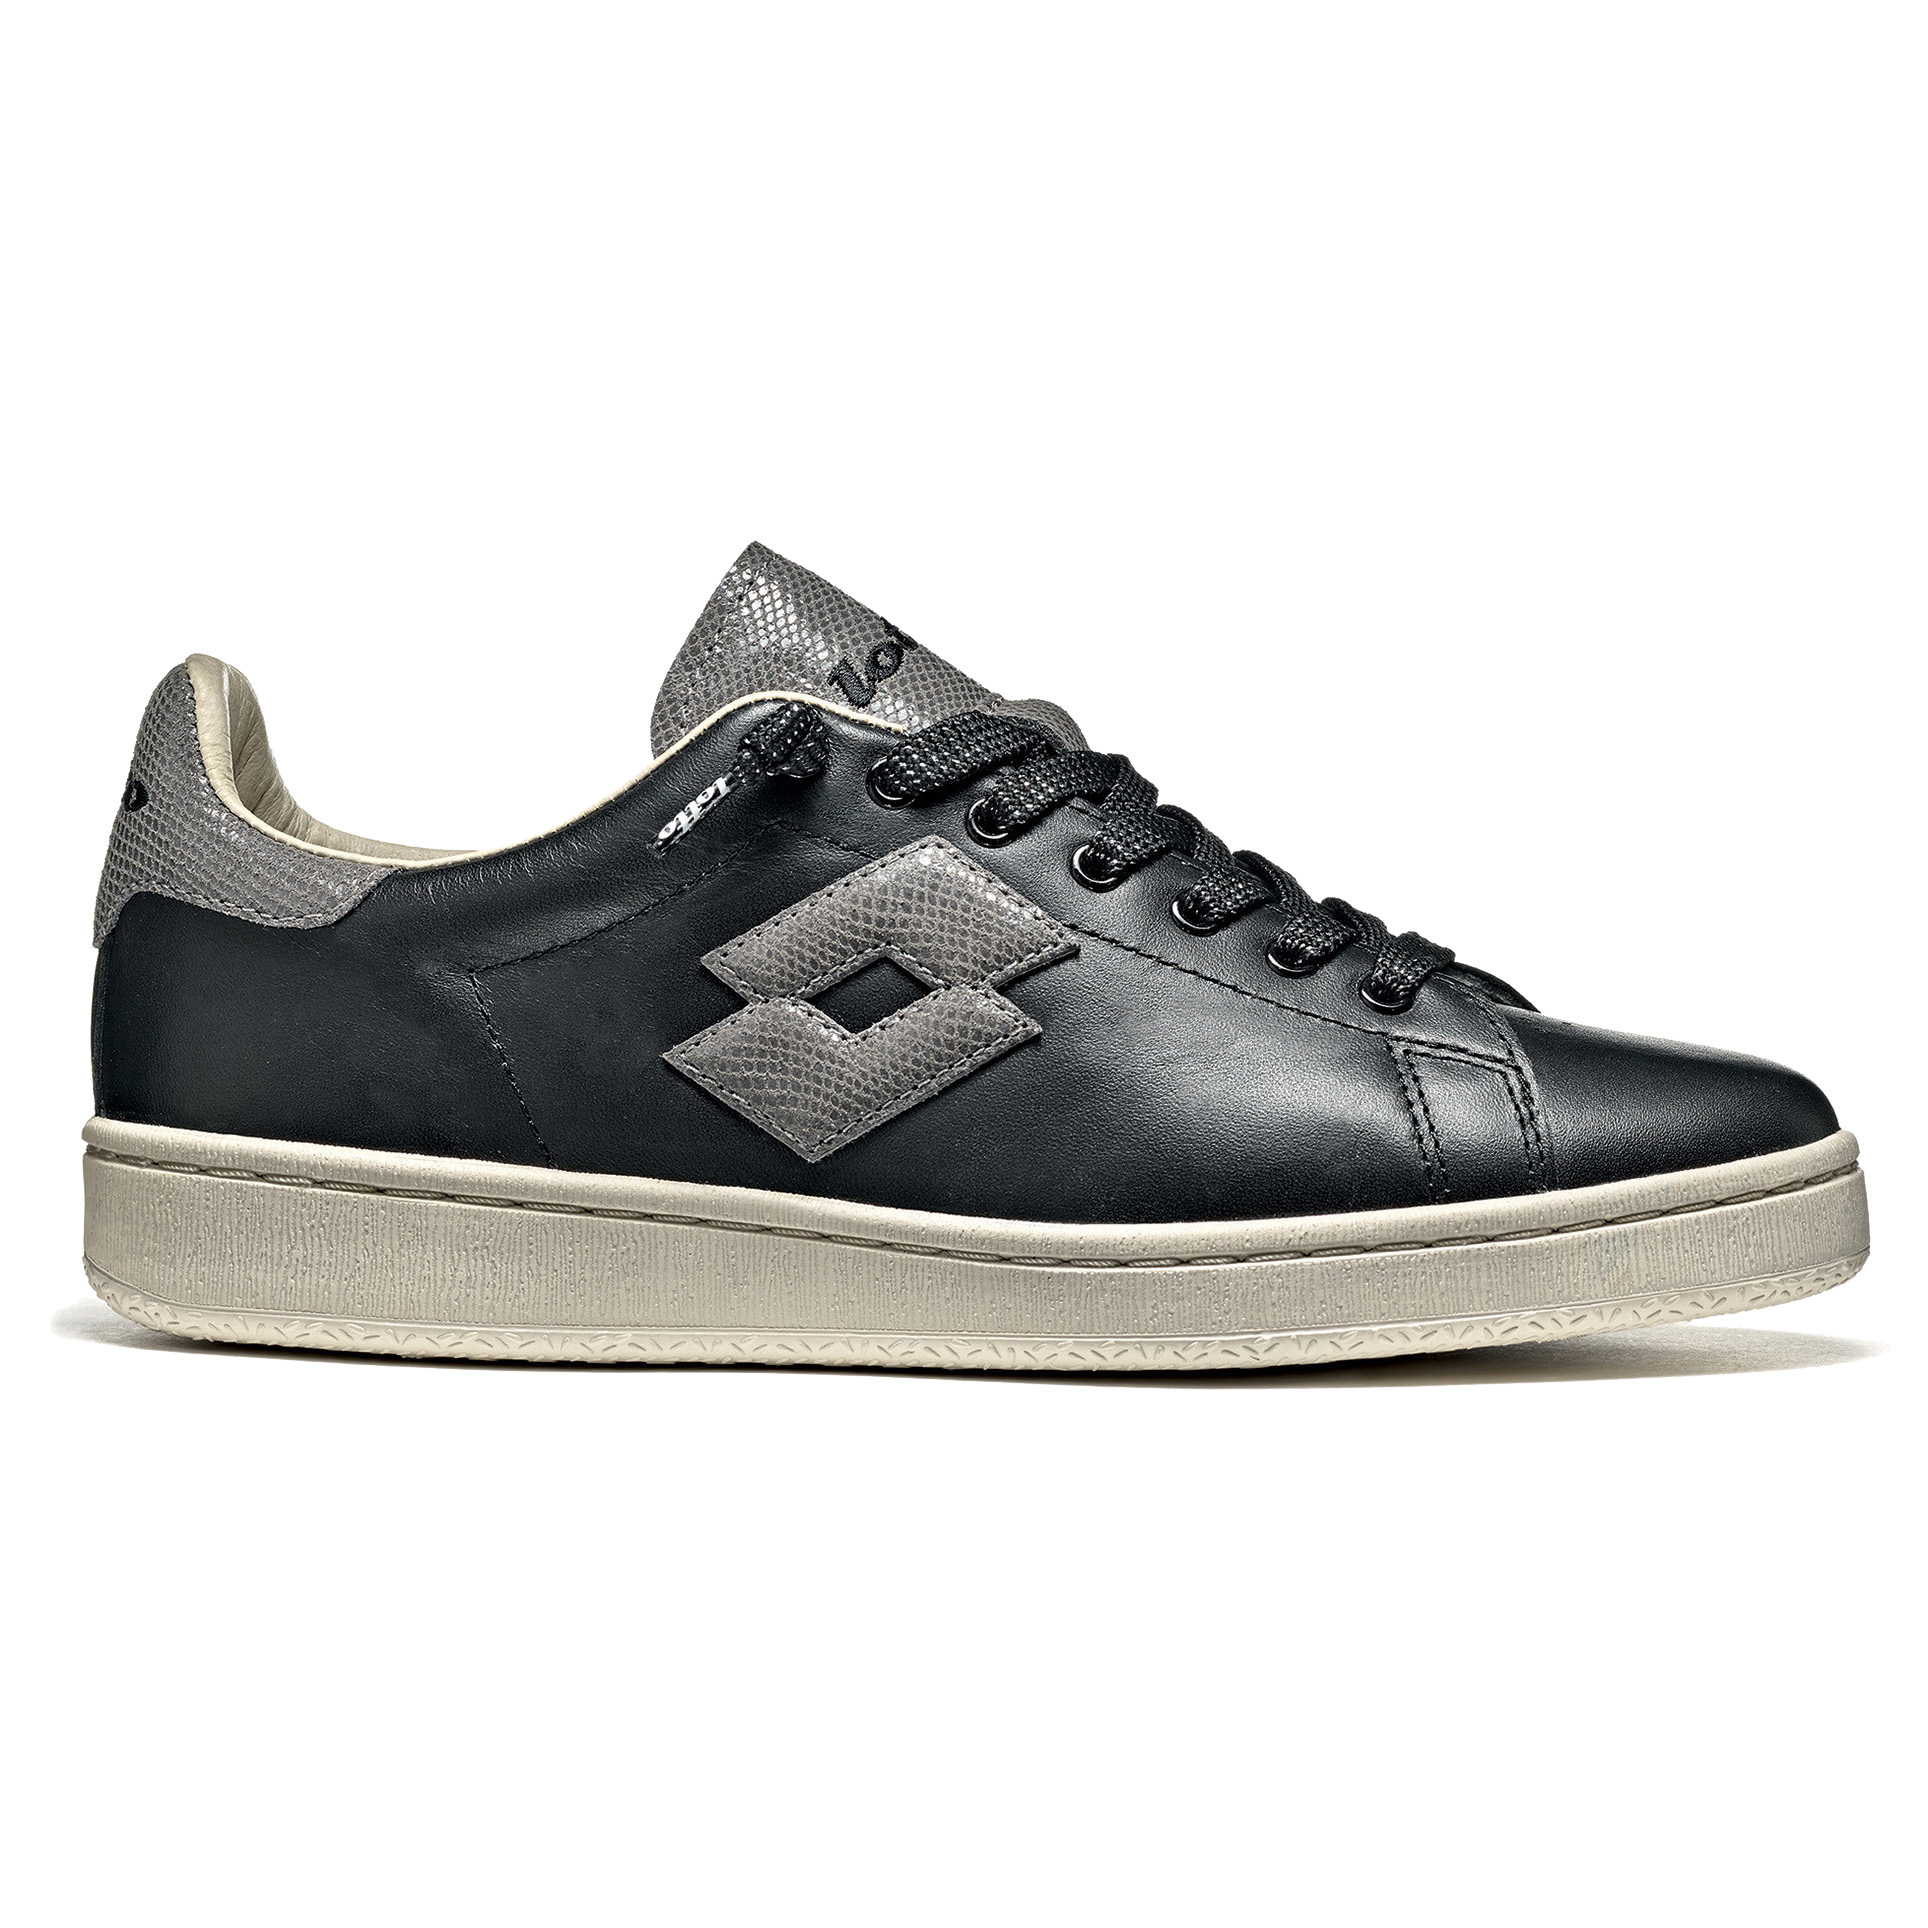 NS. 267473 DIADORA GAME L LOW WAXED UNISEX C6307 V 35